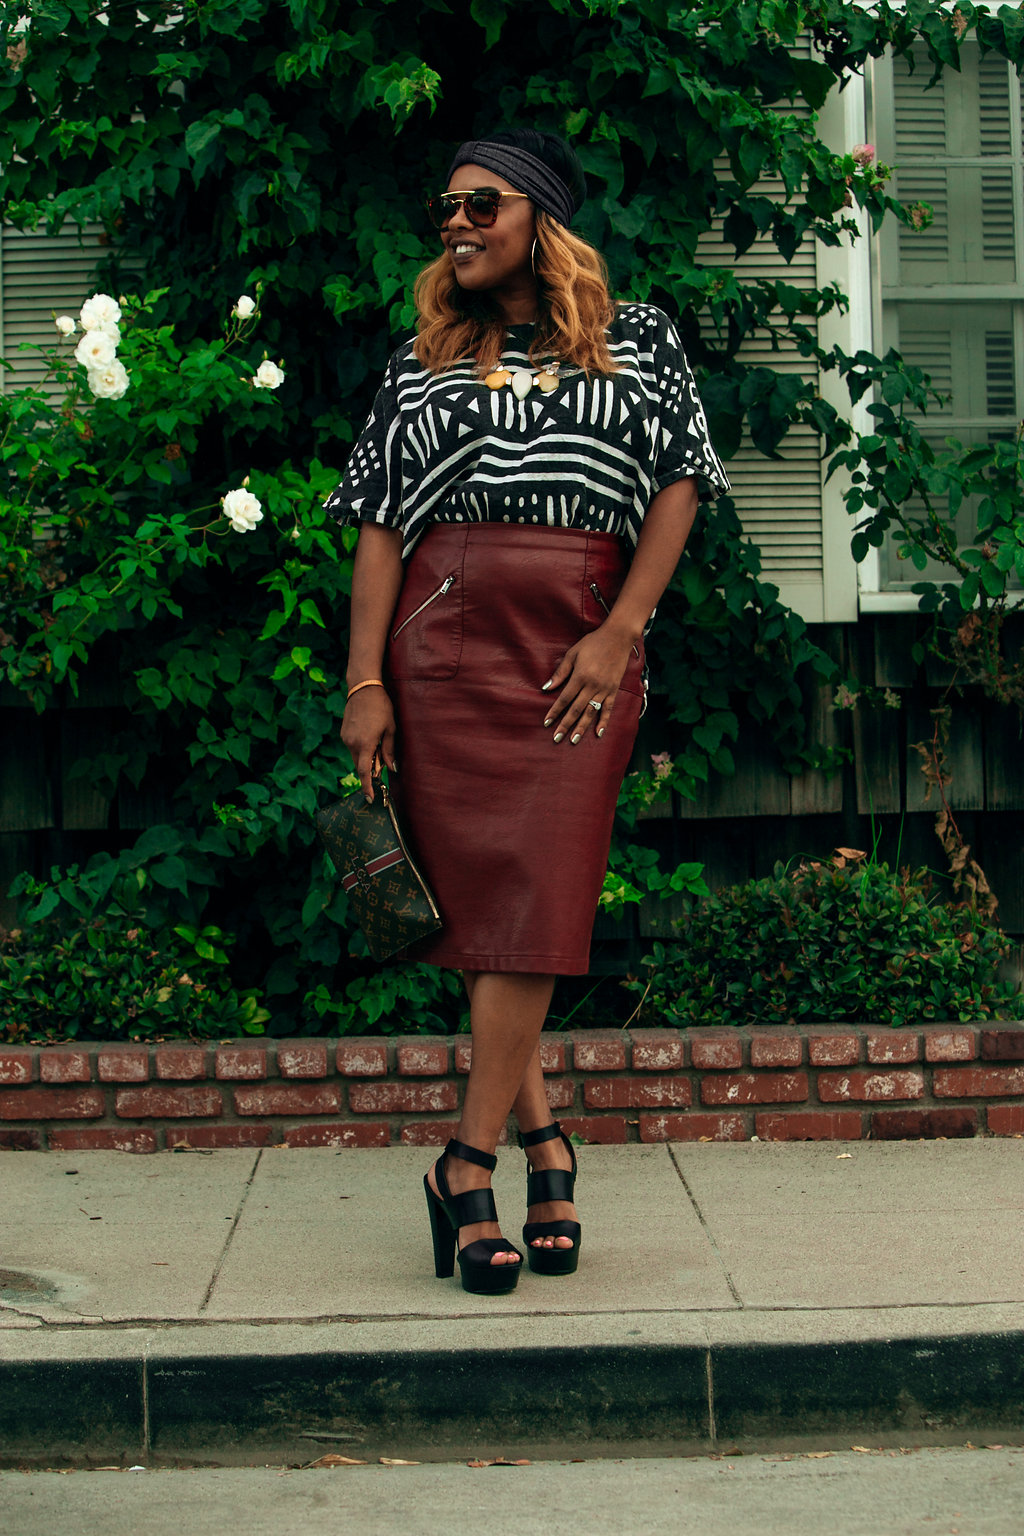 Rebel Citizen Mudcloth Shirt + Leather Skirt // https://thehautemommie.com/black-girl-magic/